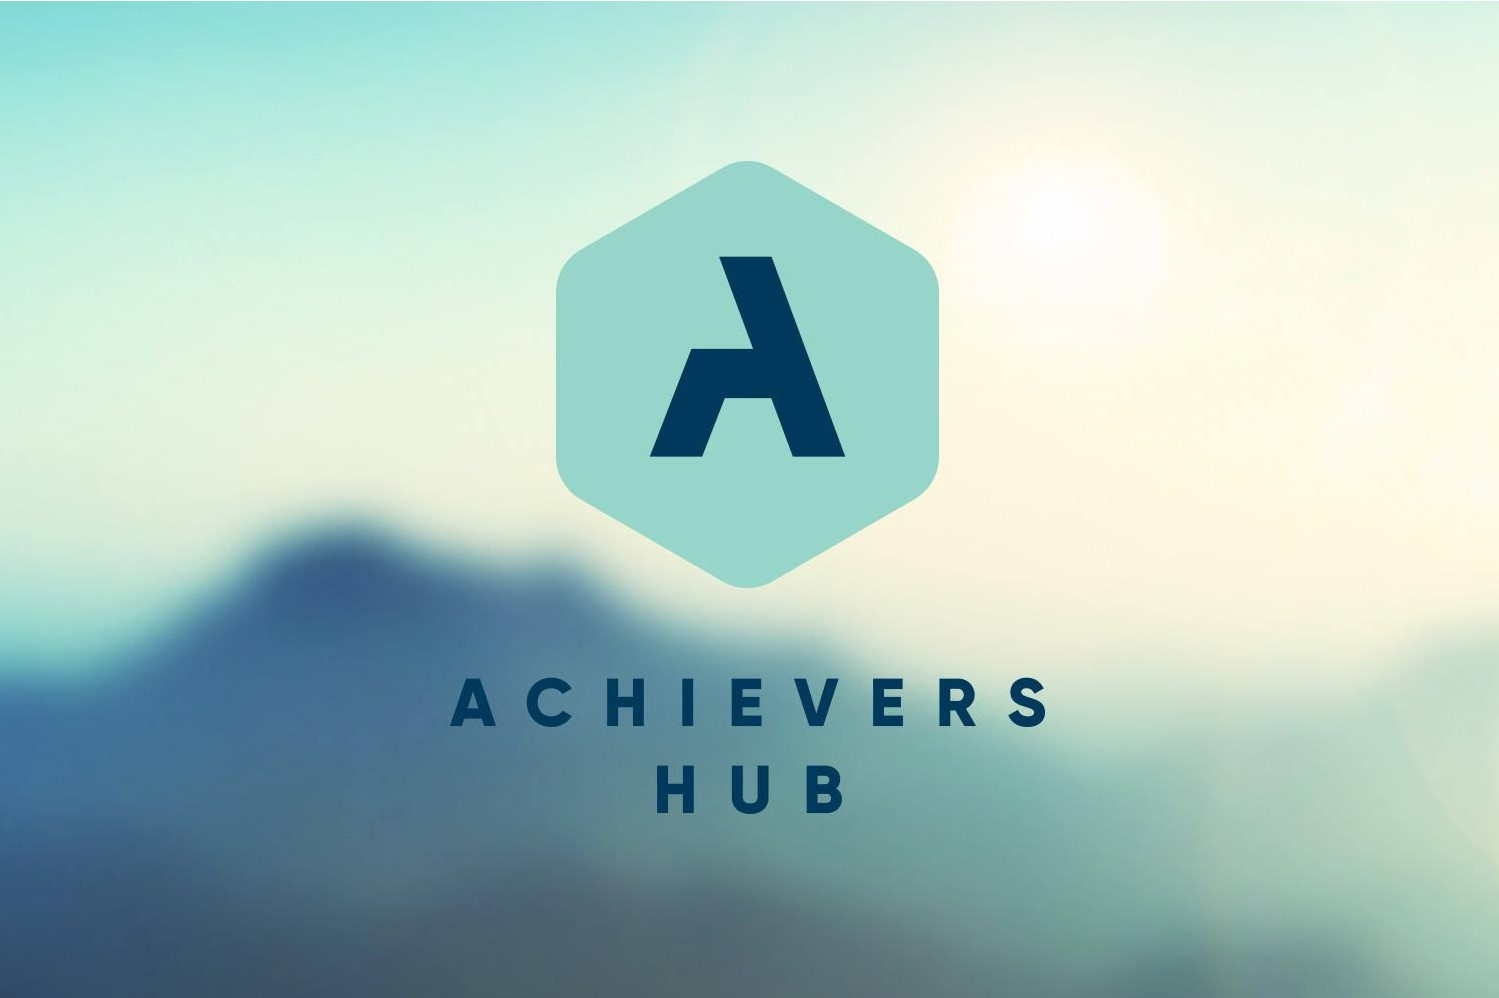 Partnership with Achievers Hub